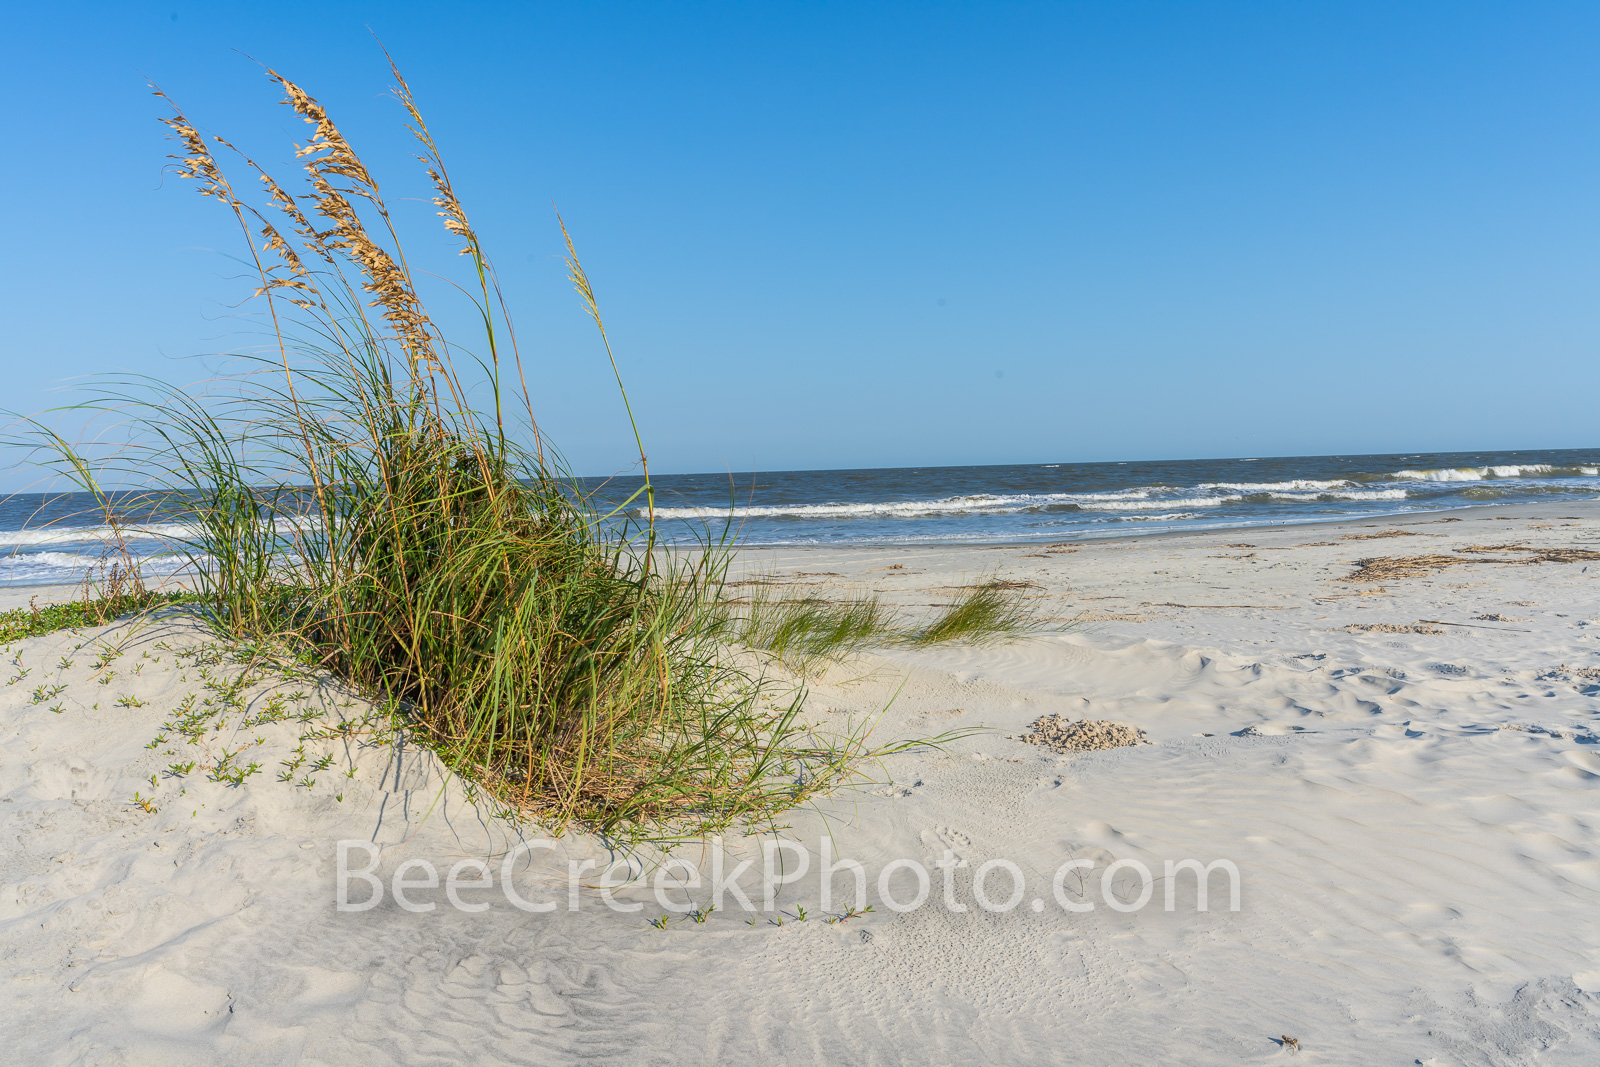 Jekyll island, sea oats, dunes, Alantic Ocean, Georgia, Golden isles, barrier island, beach, blue water, , photo